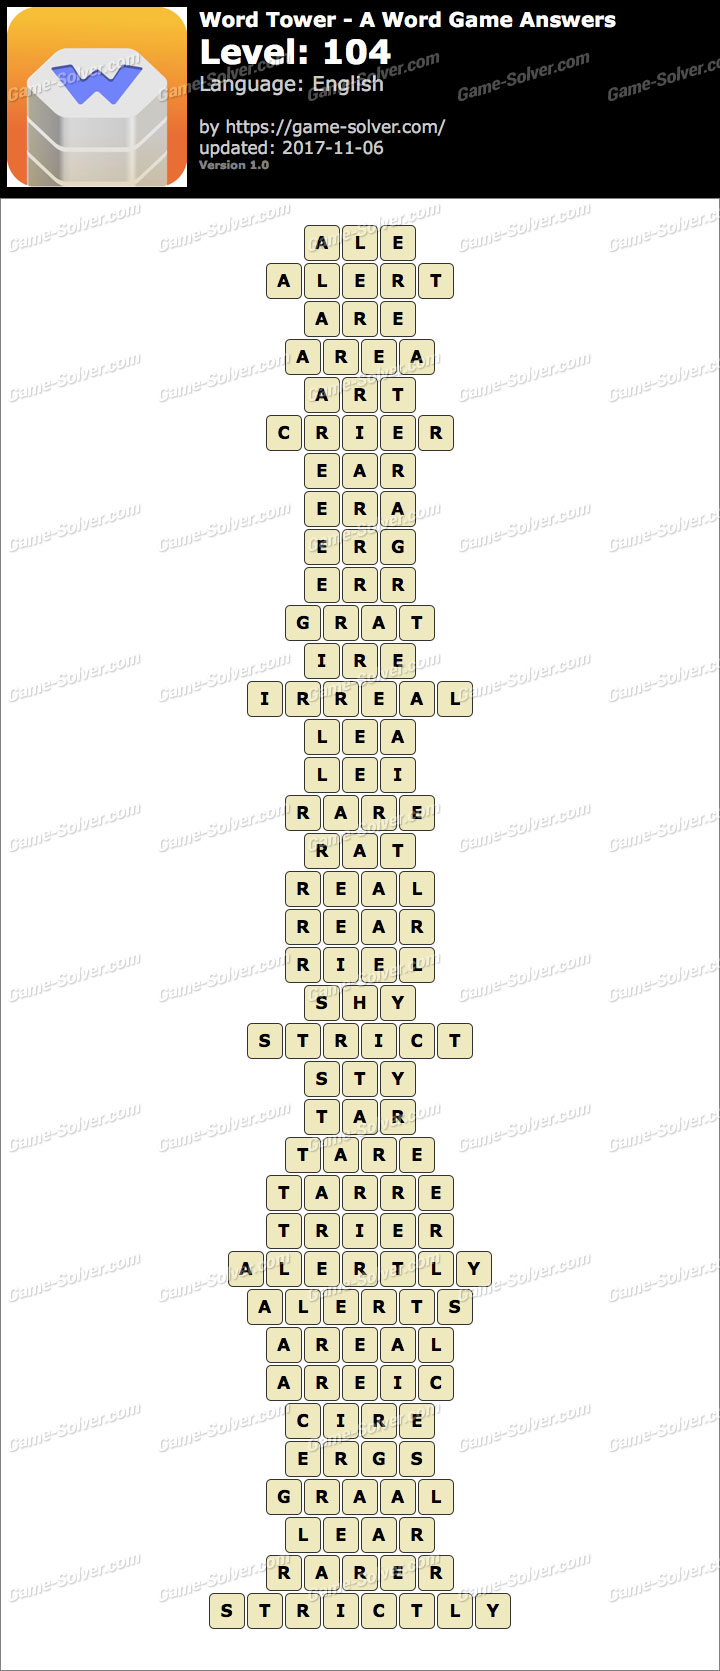 Word Tower Level 104 Answers